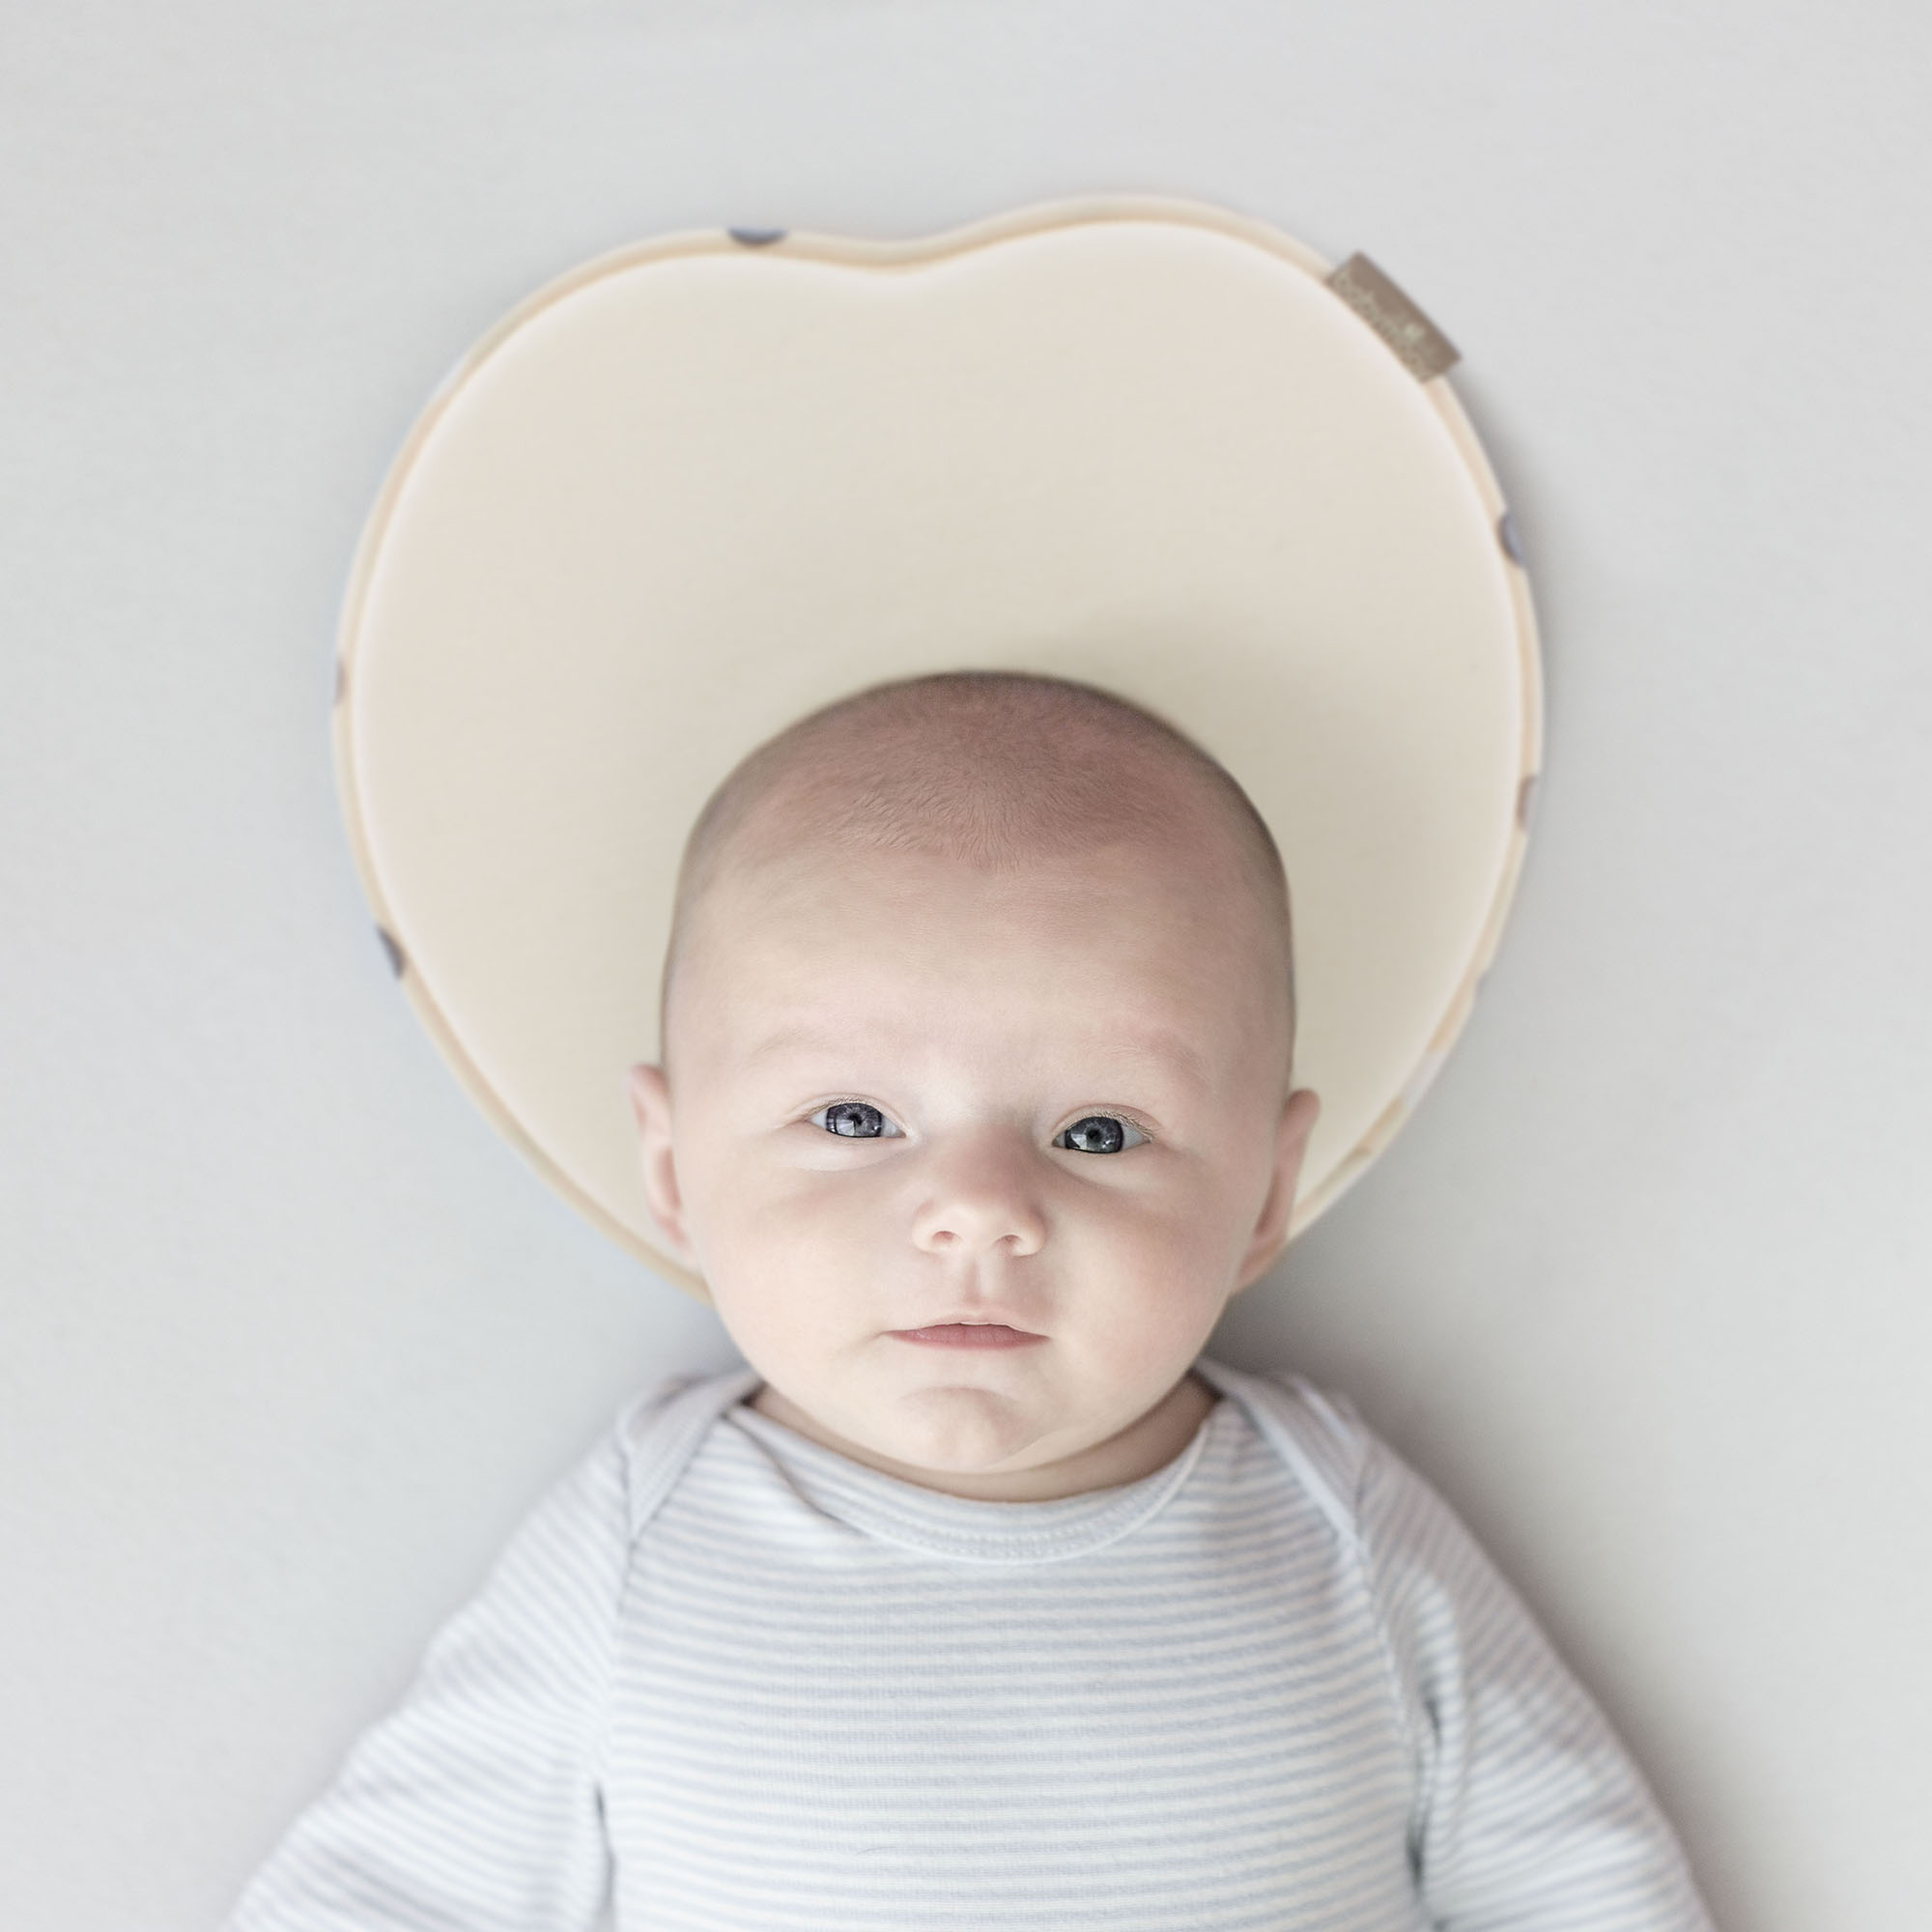 Babymoov Lovenest � Patented Pillow For Baby and Infant Head Support & Flat Head Syndrome Prevention (Ivory) by BABYMOOV